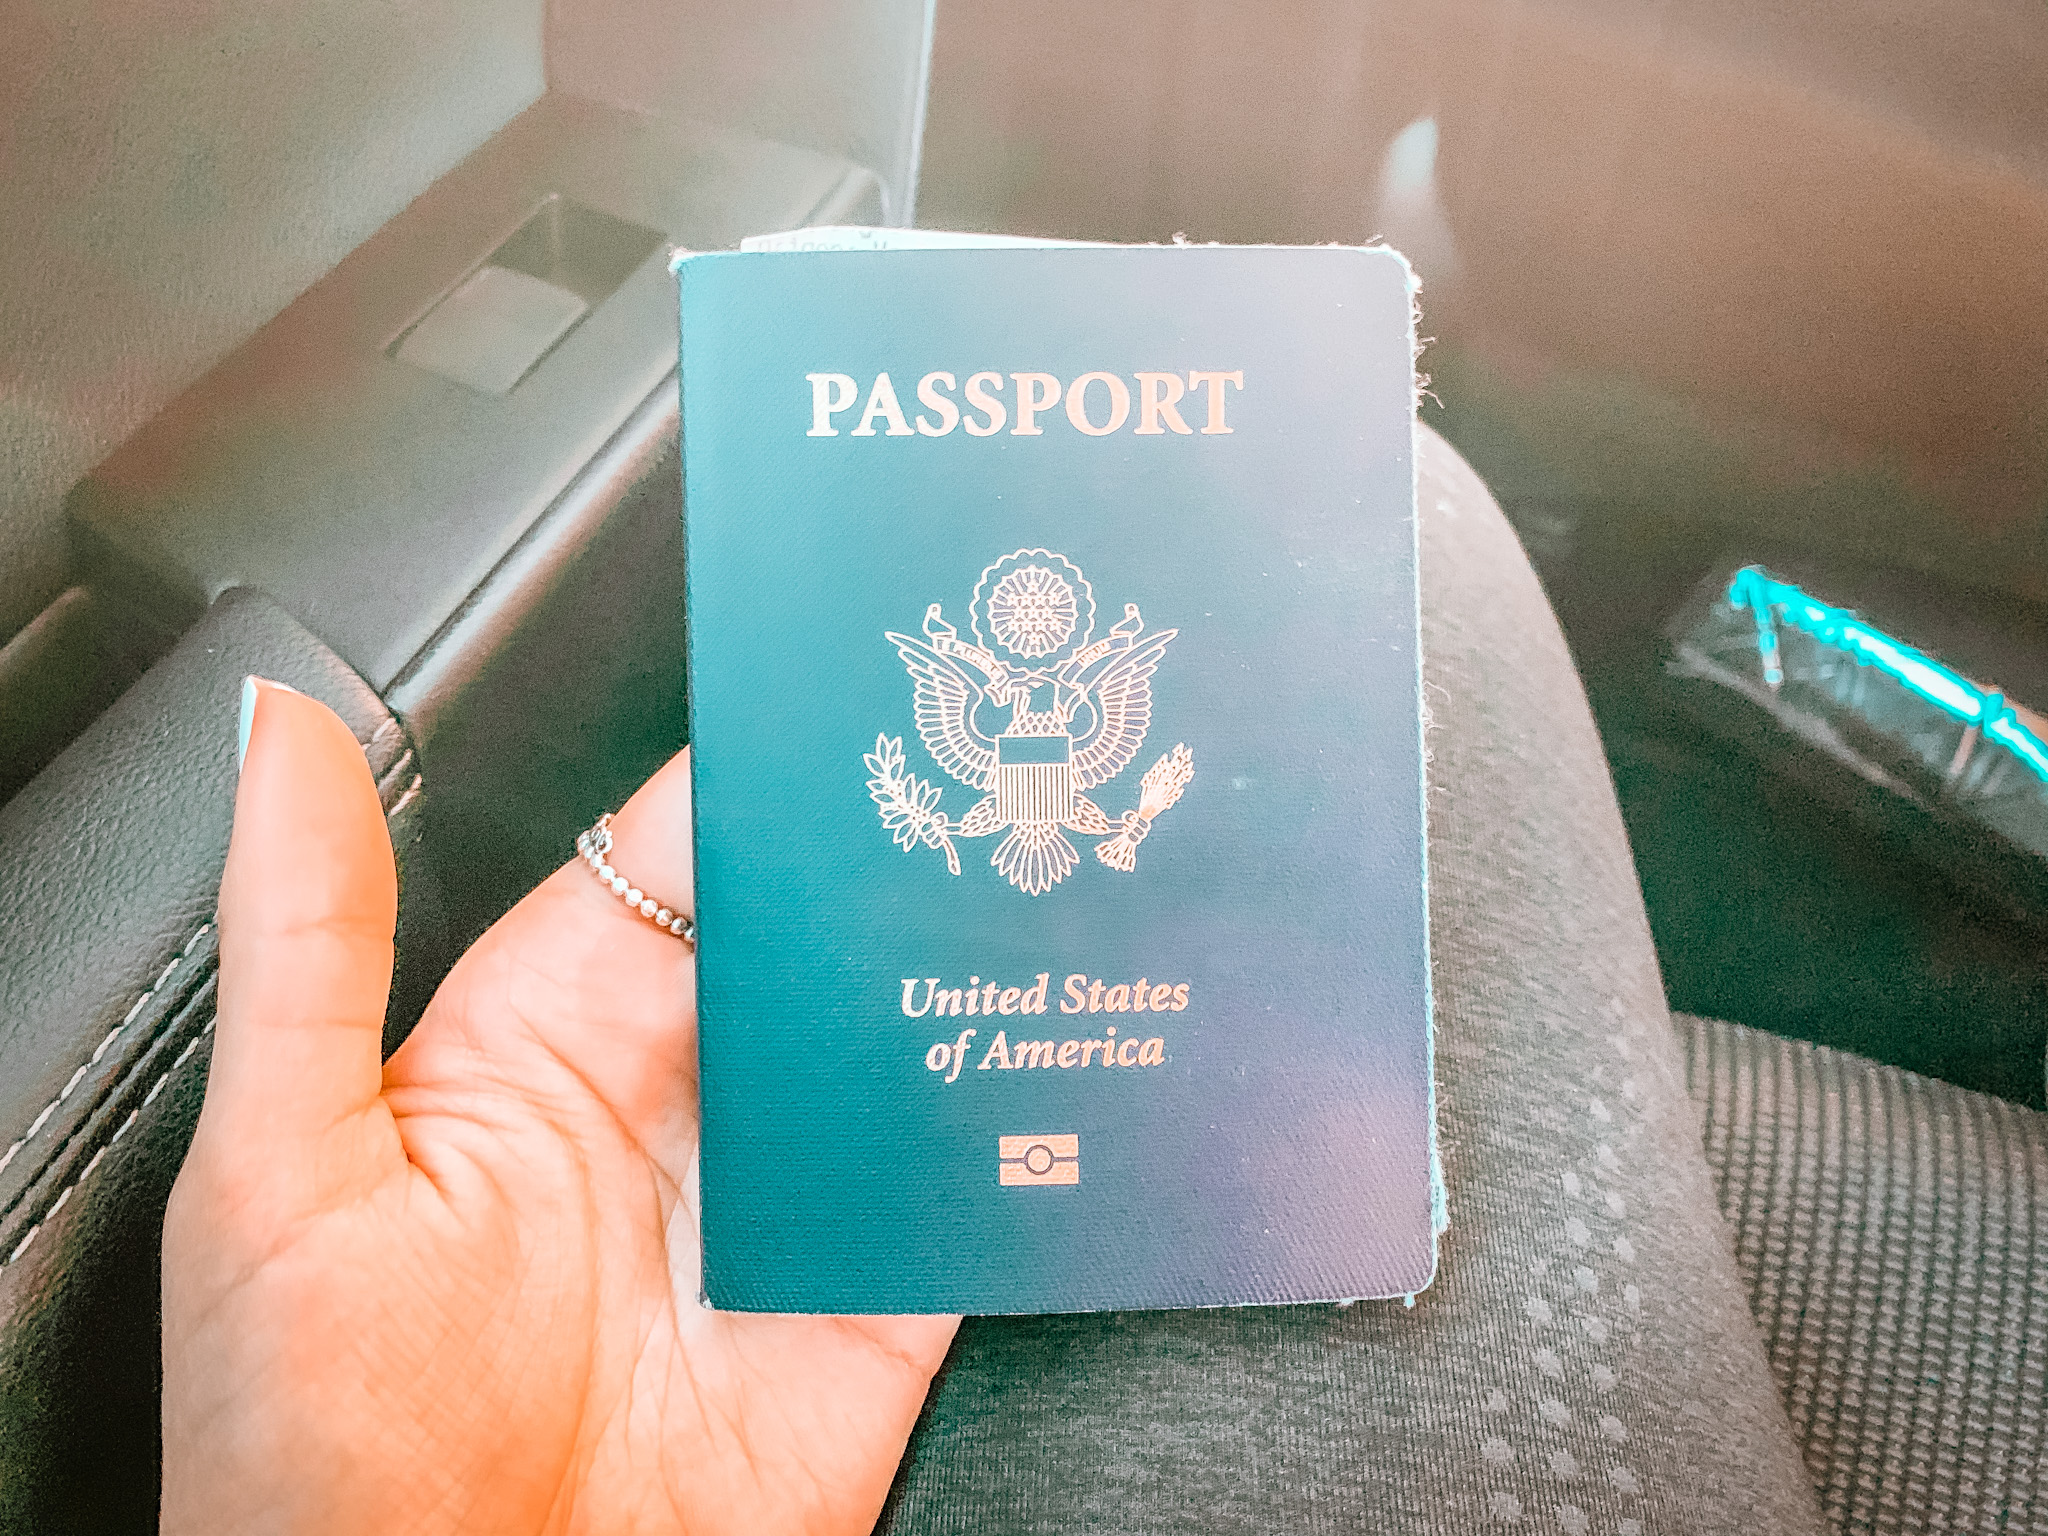 The gold United States seal with an eagle in the center is on the cover of a green American passport